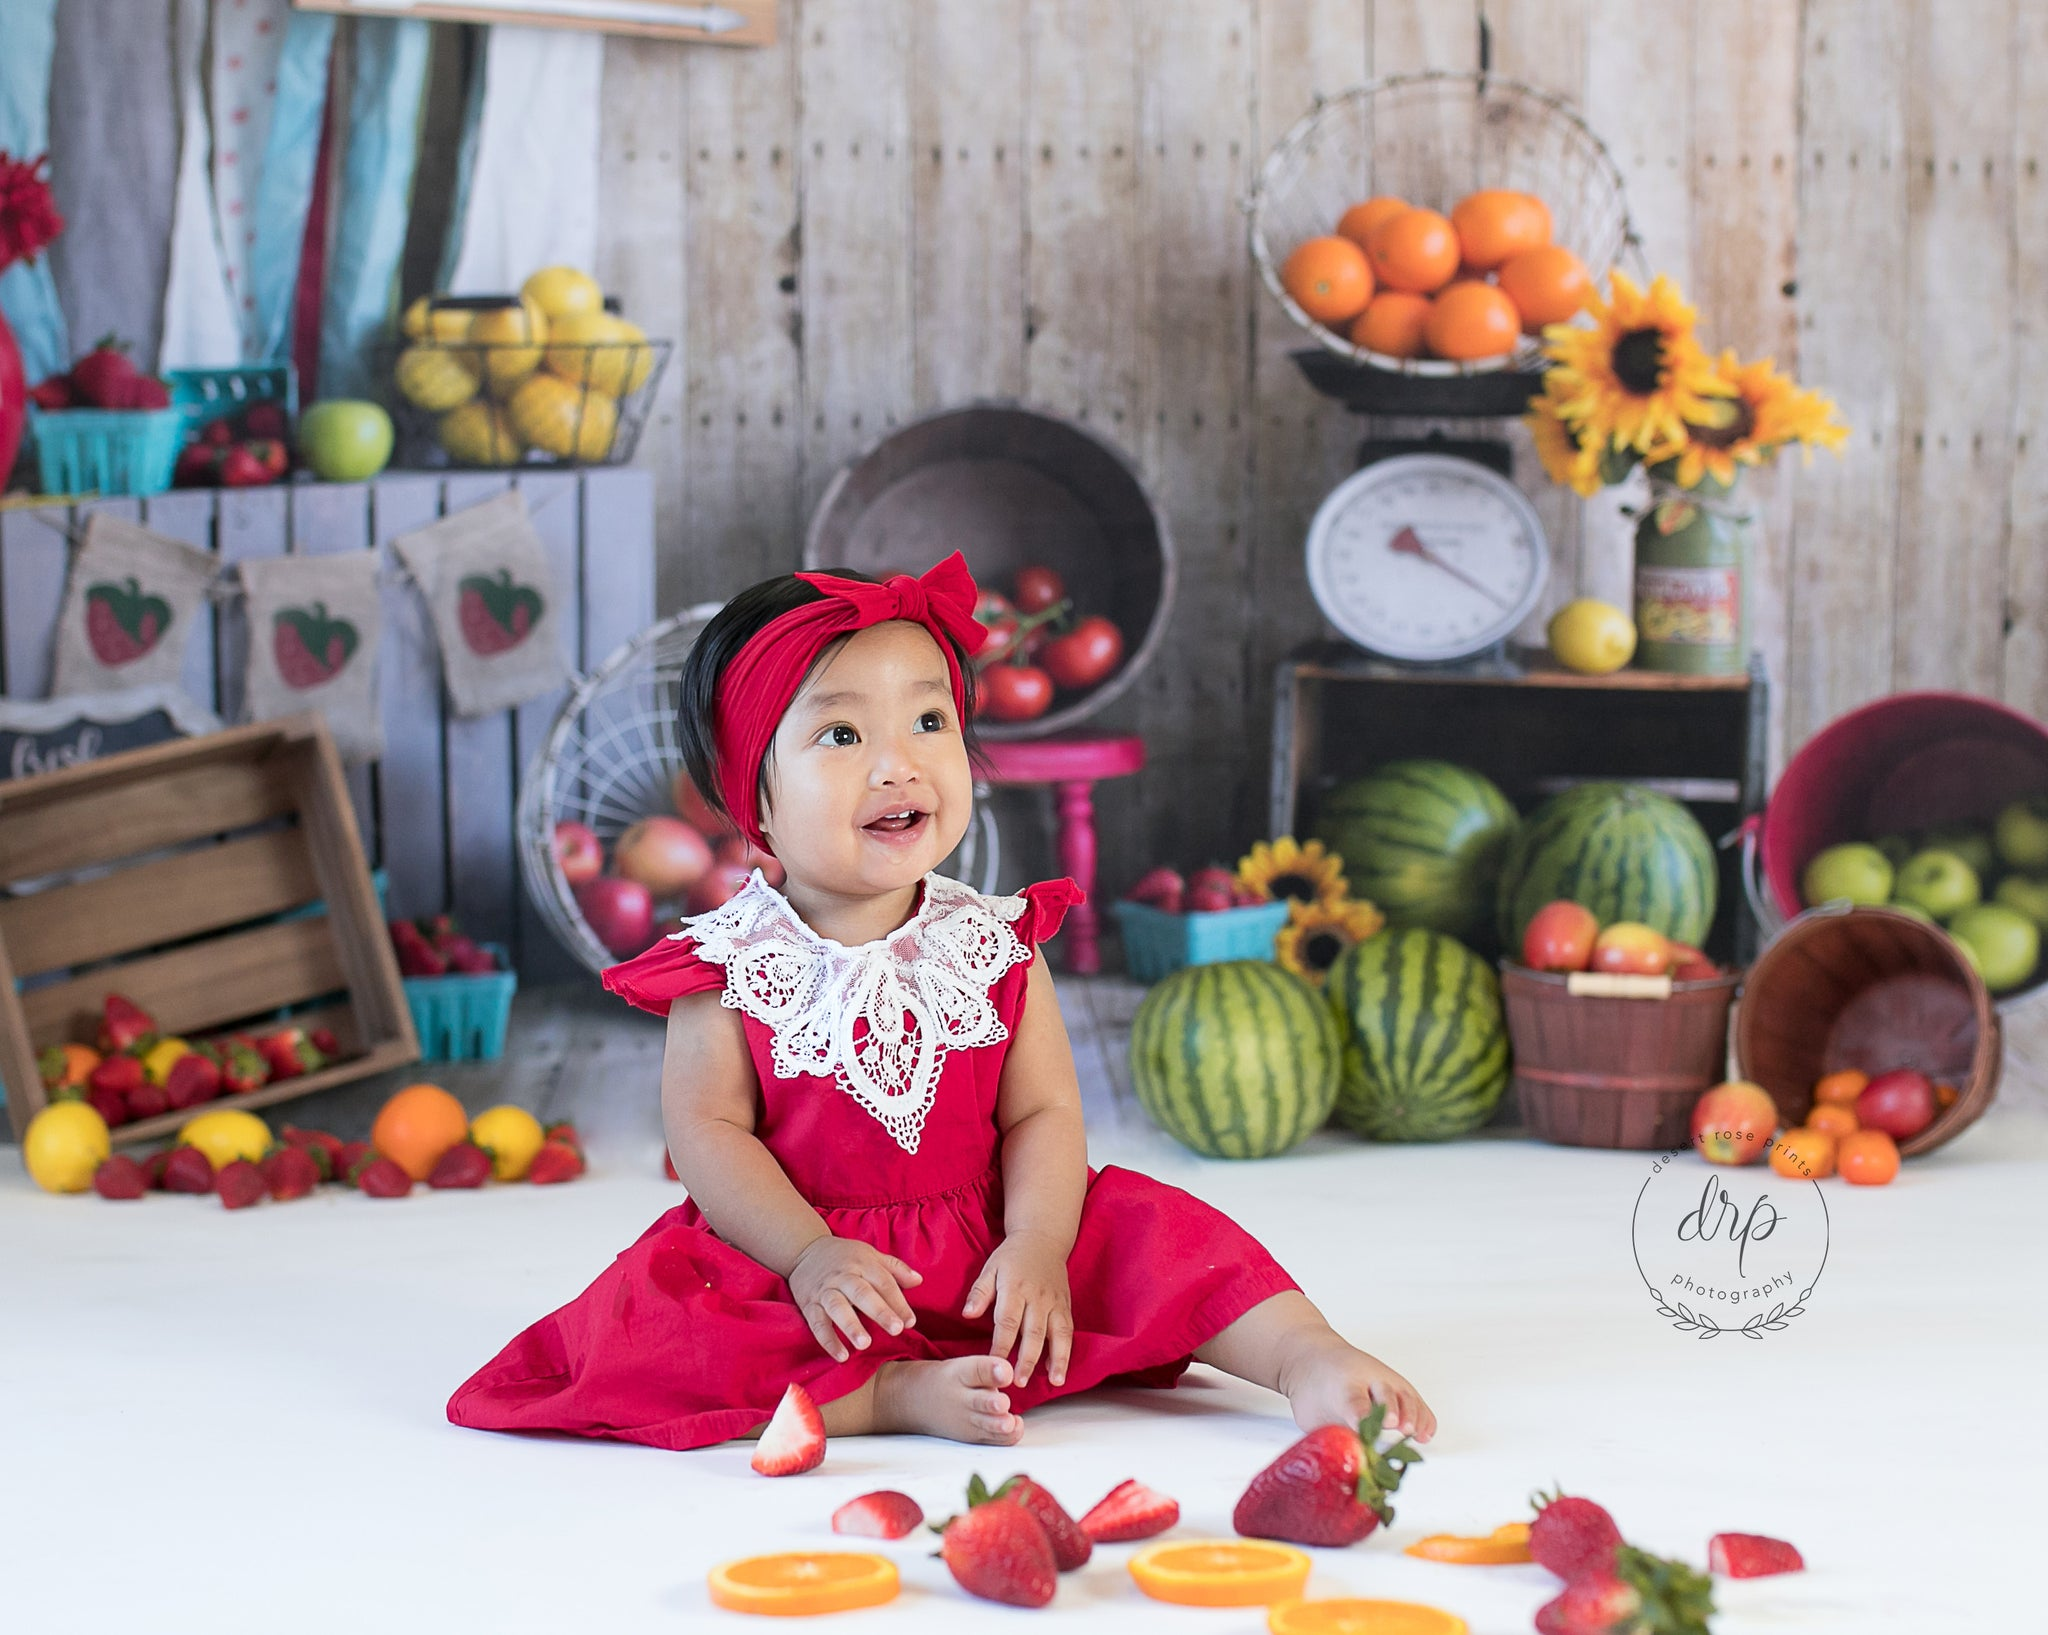 Load image into Gallery viewer, Kate Summer Farmers Market Backdrop for Photography Designed by Danette Kay Photography